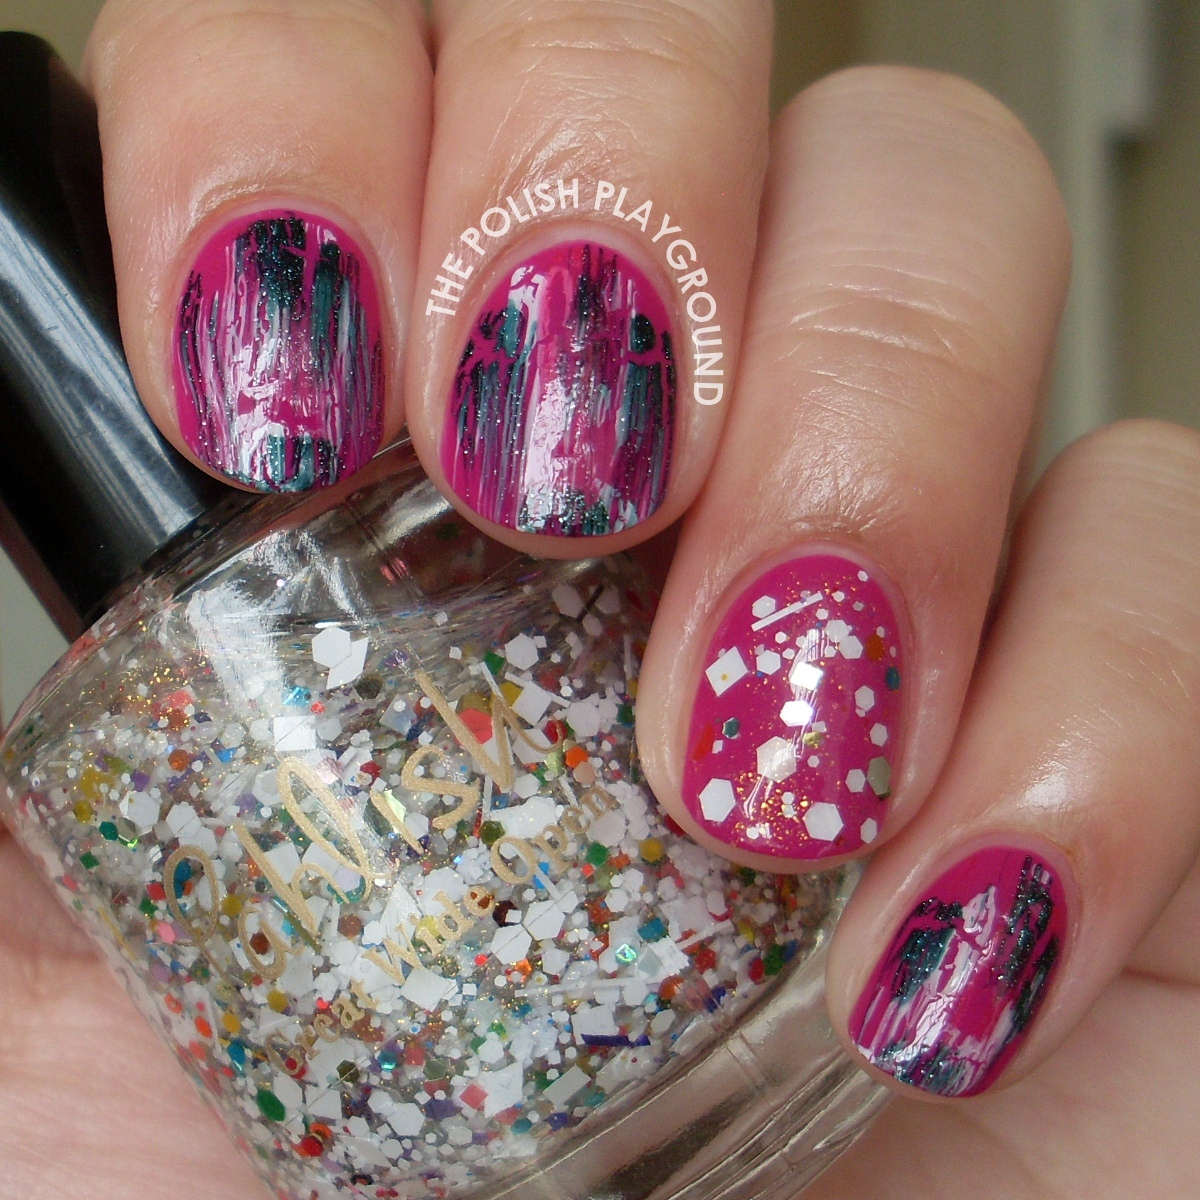 Distressed Shatter with Glitter Accent Nail Art